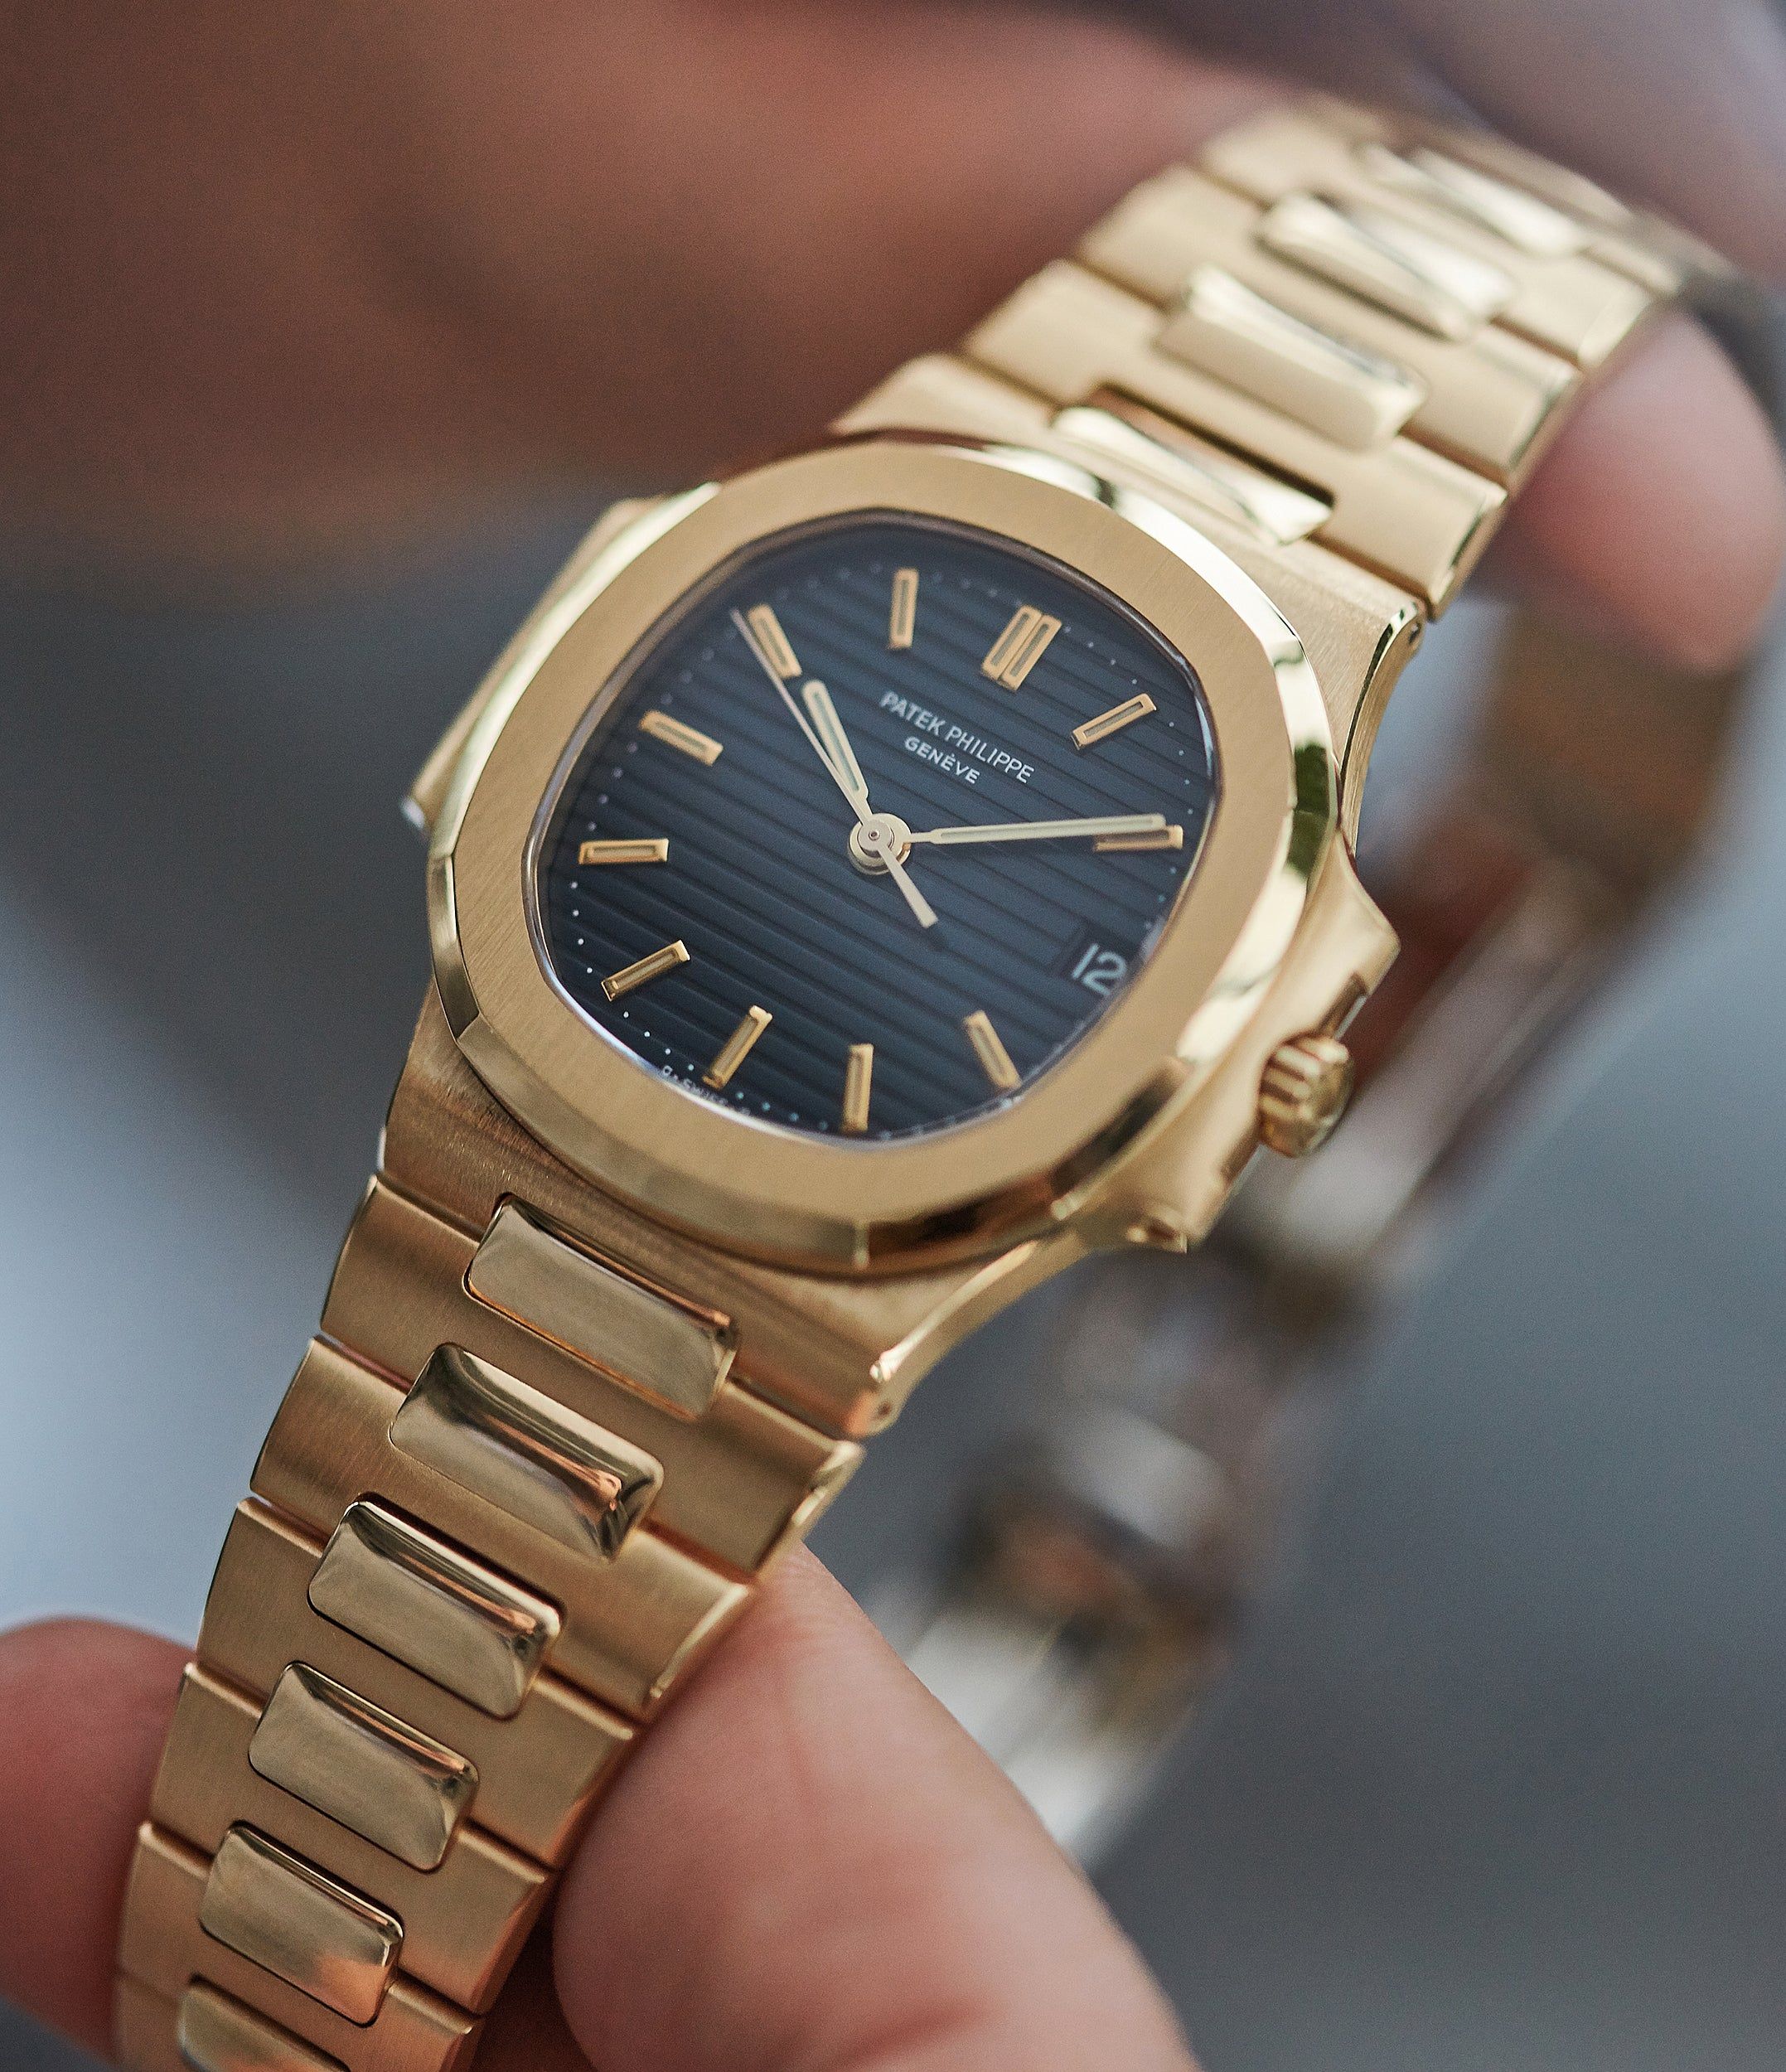 Patek Philippe Nautilus 3800 in yellow gold with blue dial from A Collected Man London